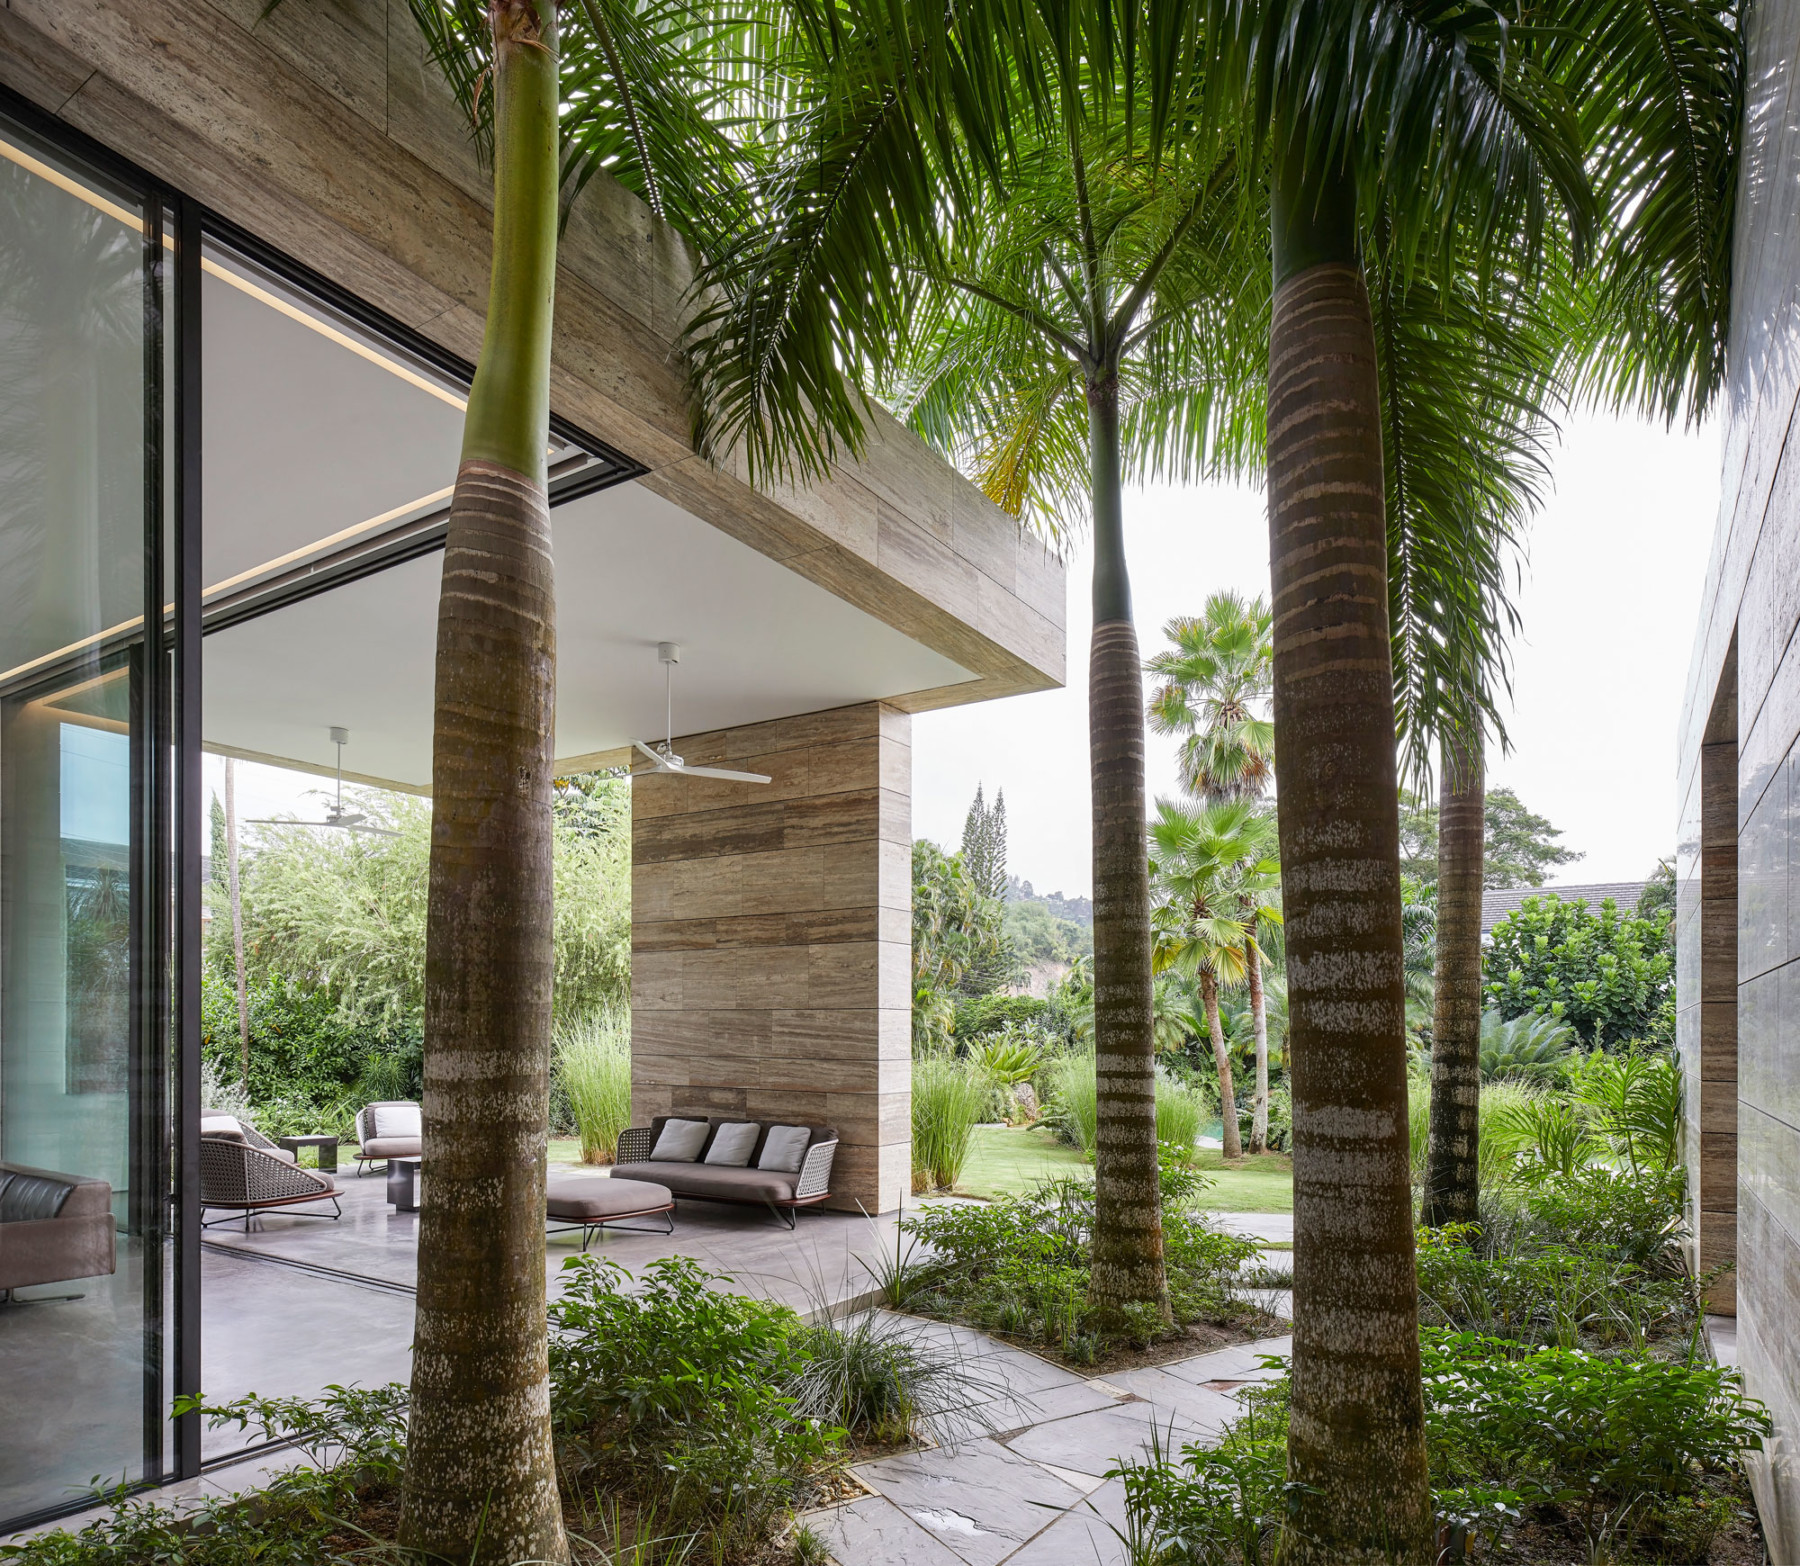 Jamie-Fobert-Architects travertine-house Port-of-Spain Trinidad Hufton+Crow 008